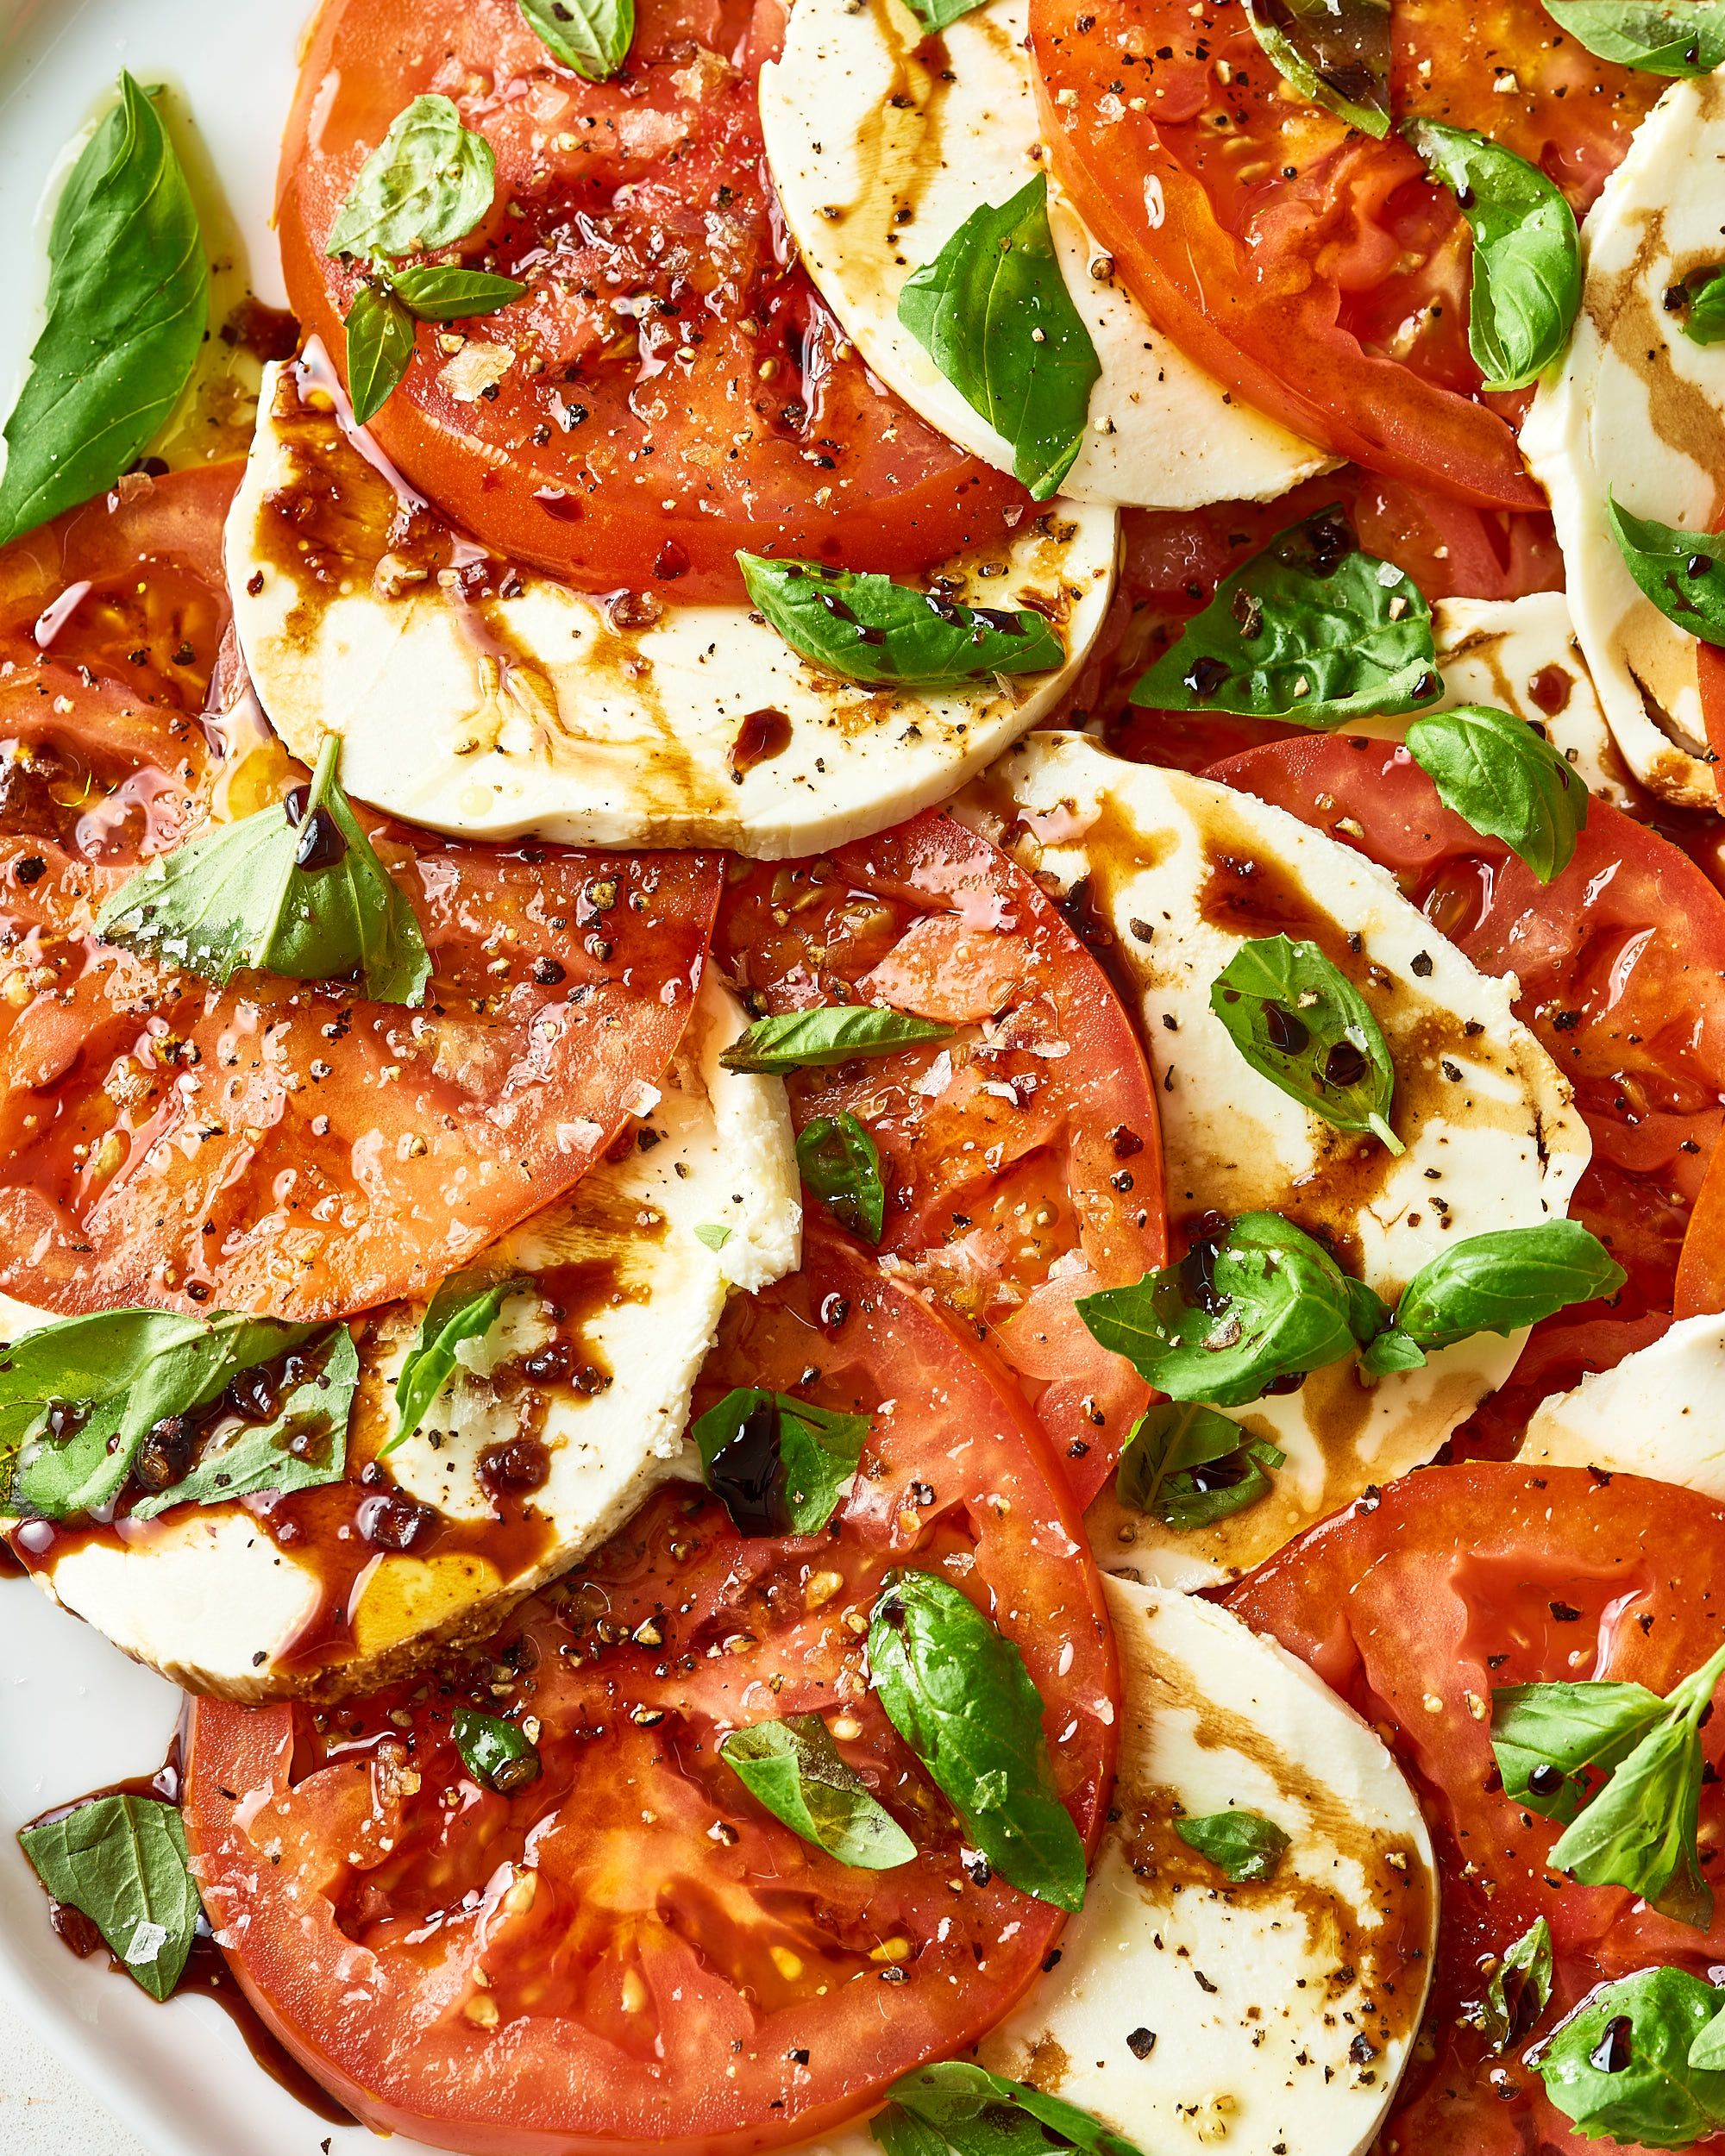 How To Make Easy Caprese Salad With Balsamic Glaze Recipe Caprese Salad Caprese Salad Recipe Caprese